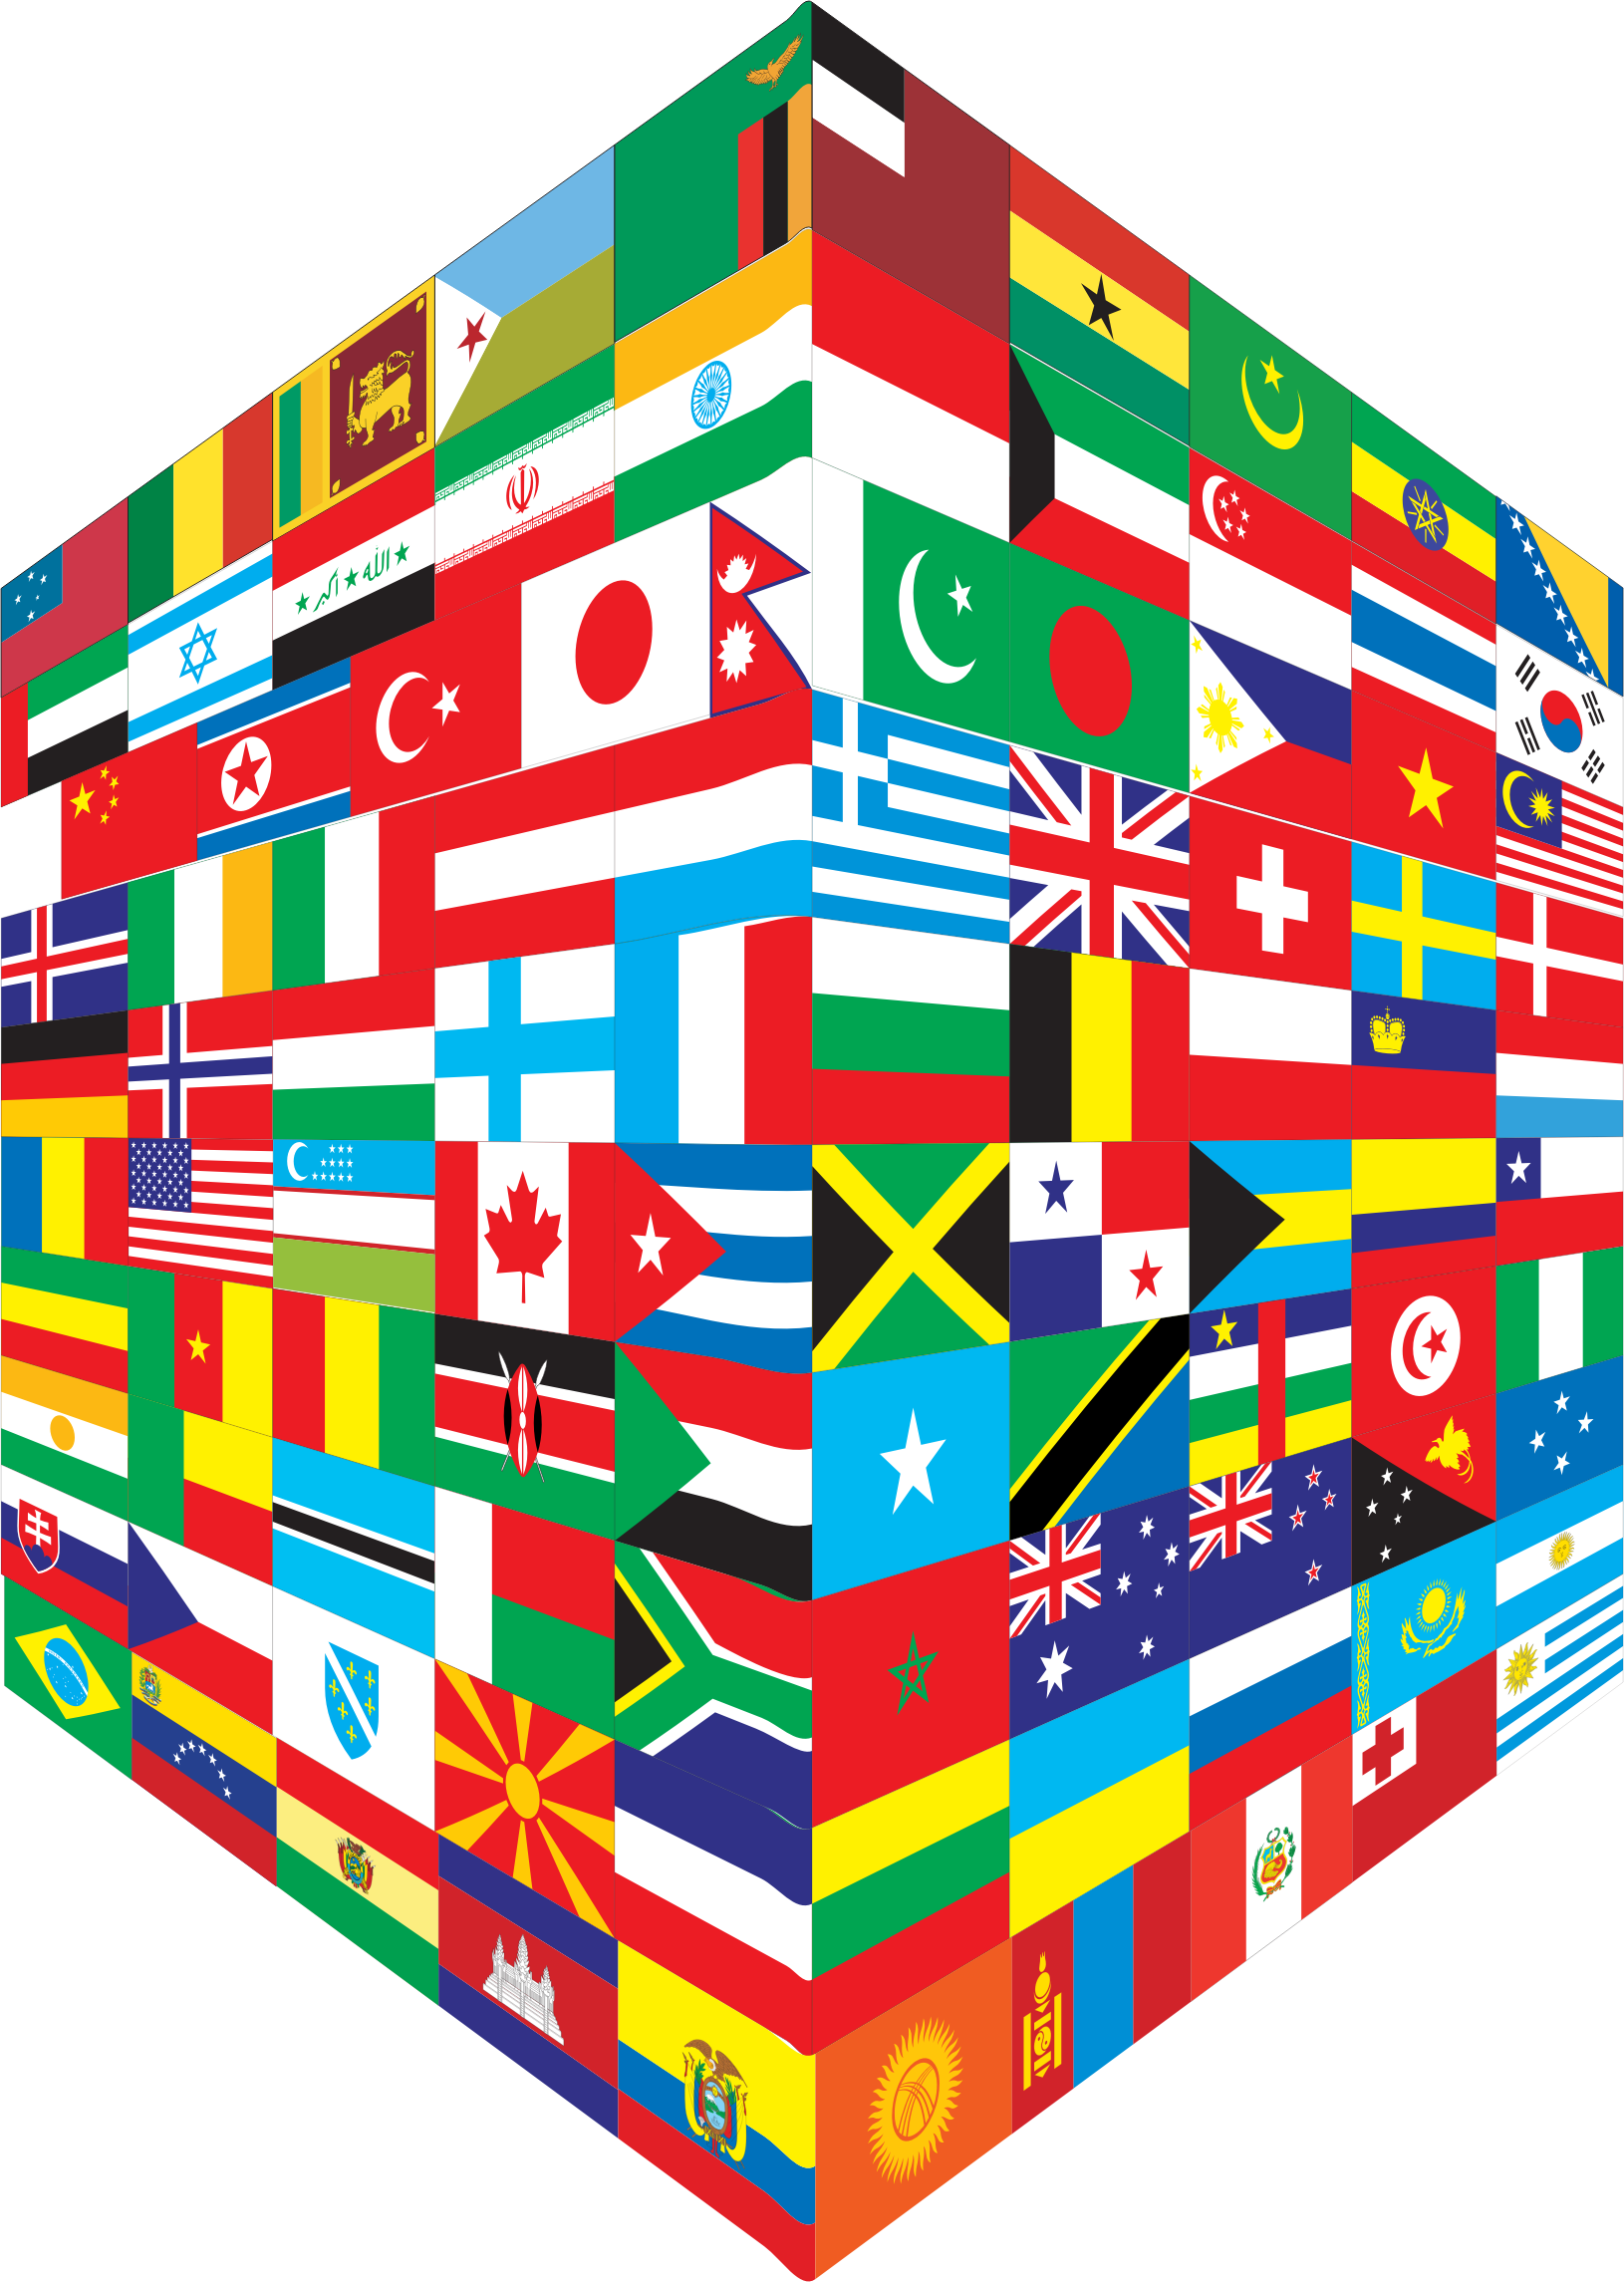 World Flags Cube by GDJ